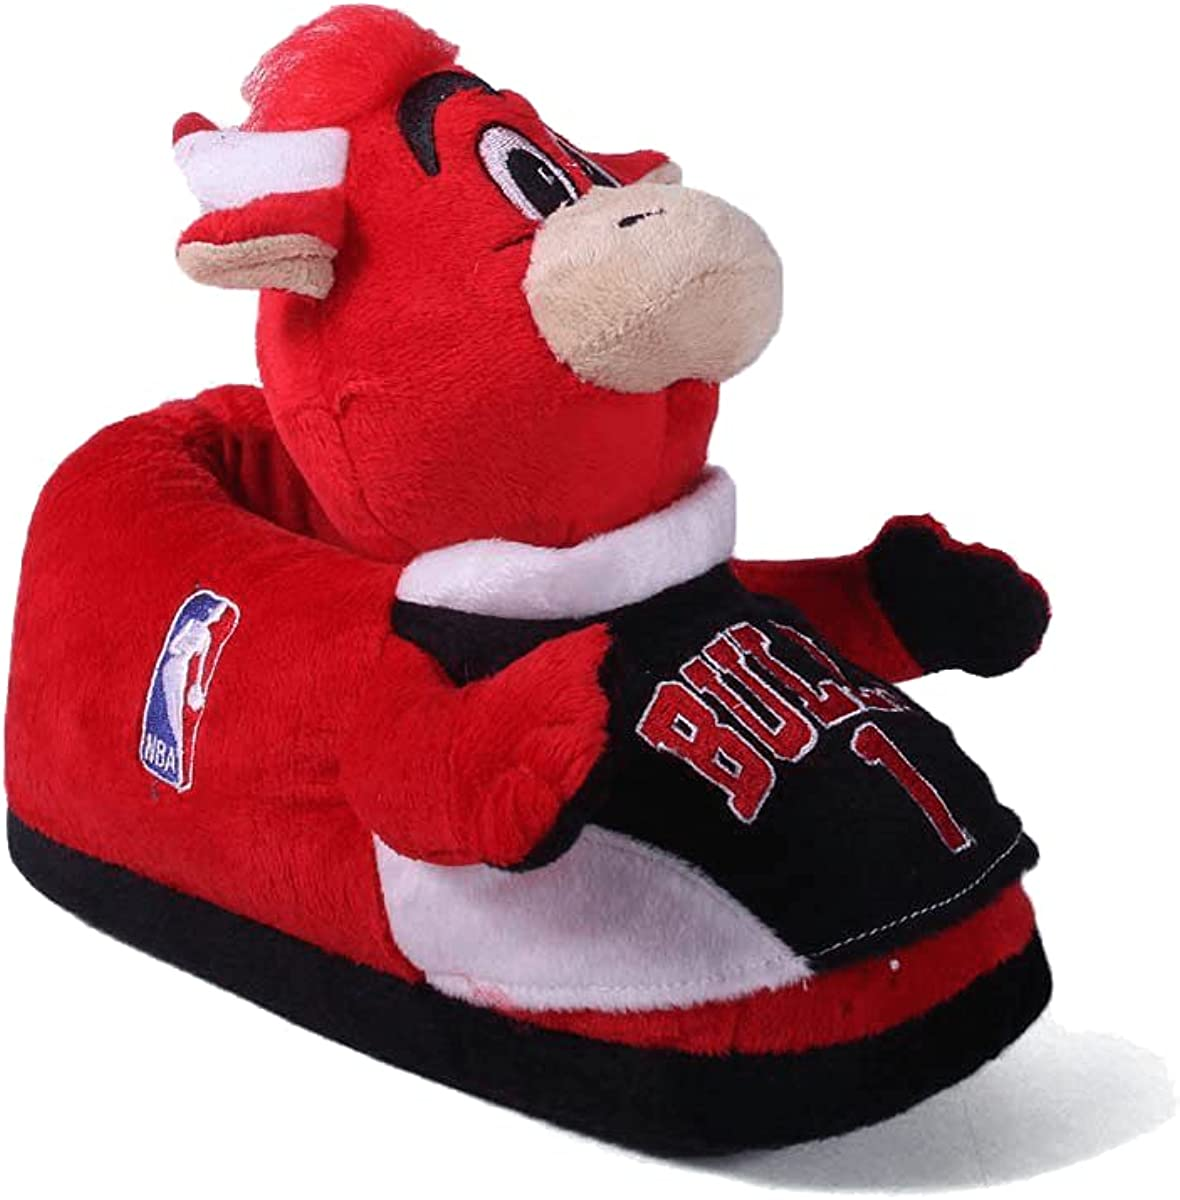 Comfy Feet Mens and Womens Officially Licensed NBAMascot Slippers